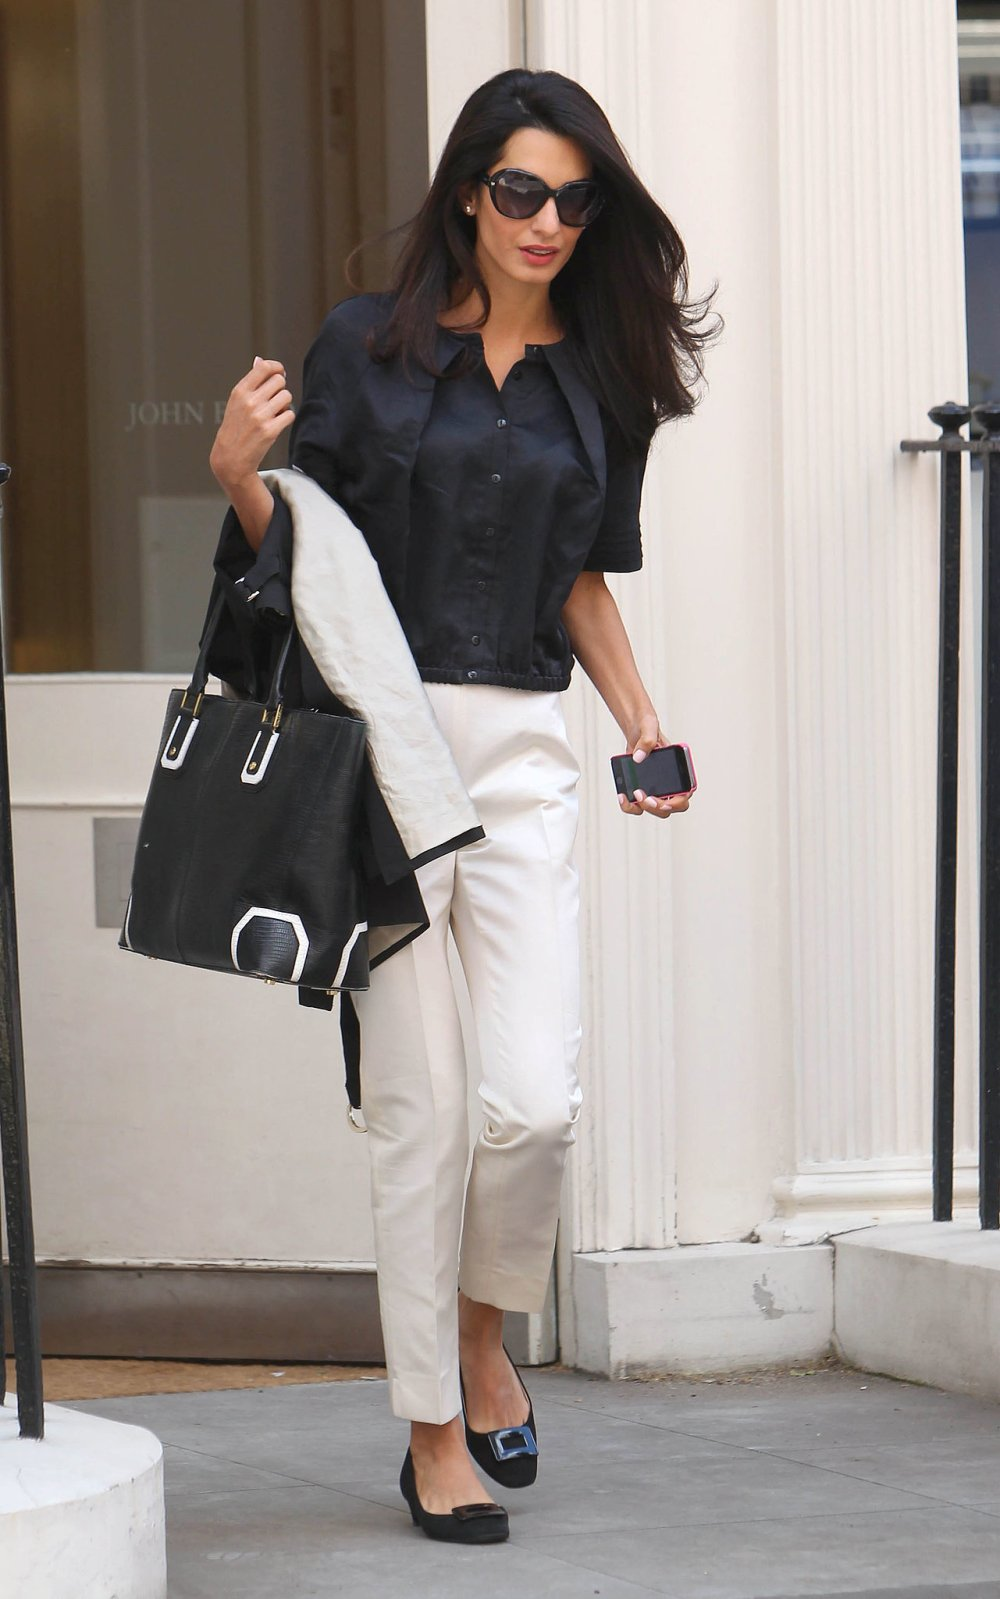 Lightweight-Top-White-Trousers-Perfect-Summer-Combination.jpg.pagespeed.ce.qsP_ZCTYlP